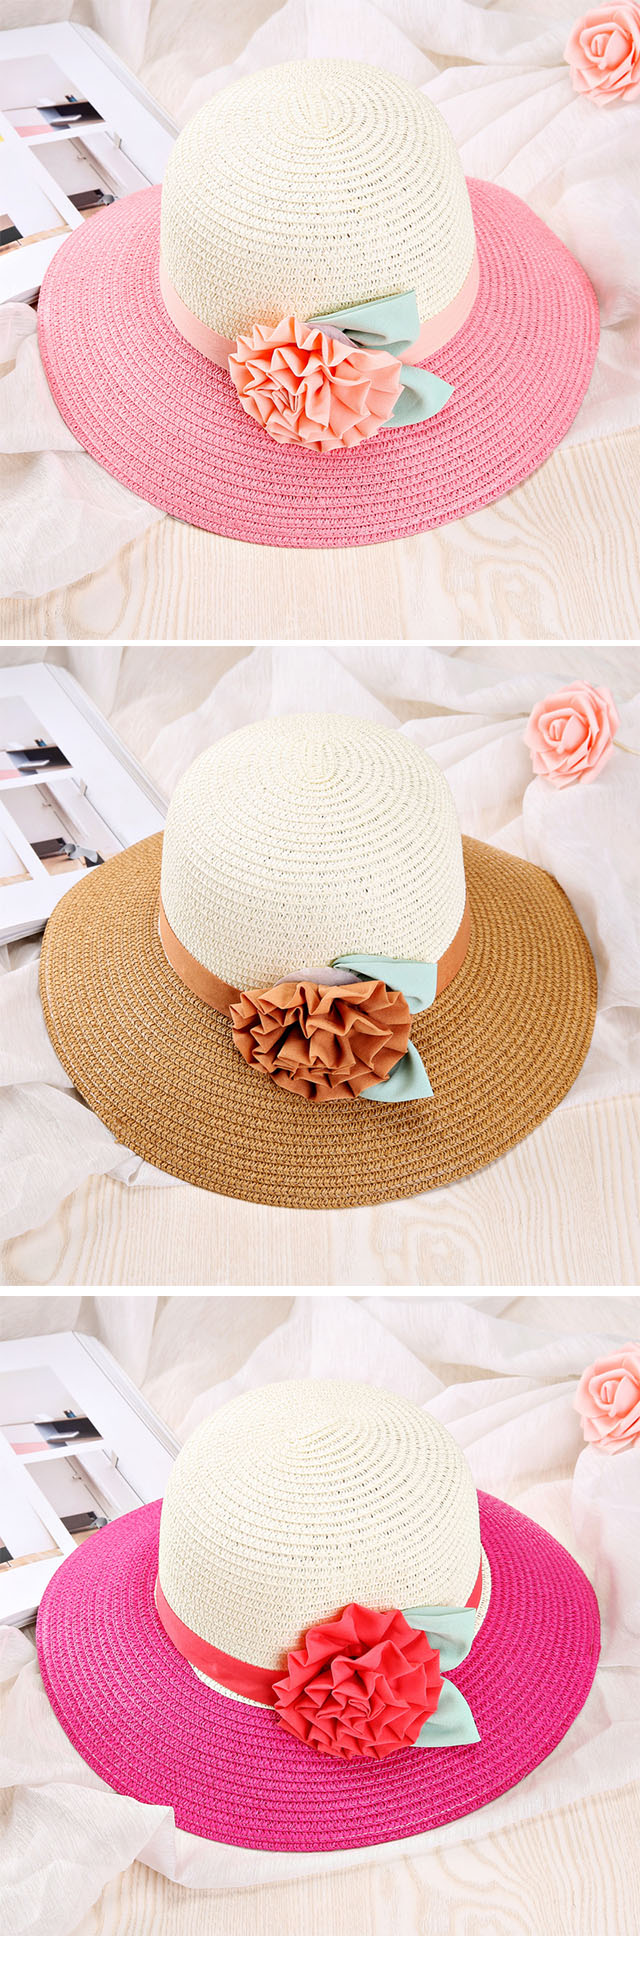 Top Quality Cheap Wholesale Custom promotion hat child jazz caps straw beach hats made in China